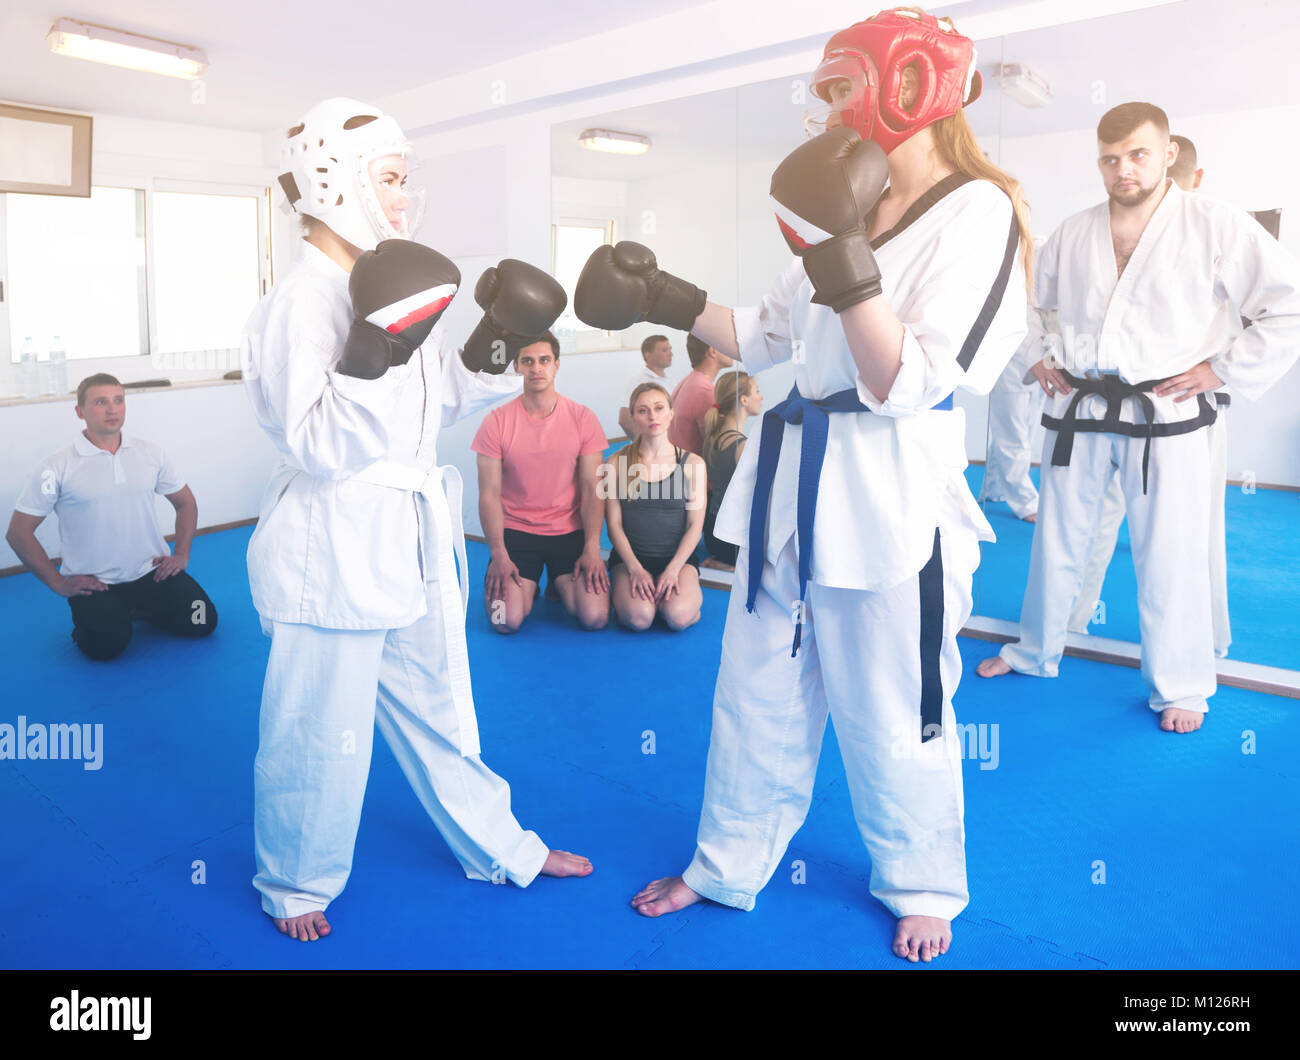 Female trainees conduct sparring for a taekwondo class Stock